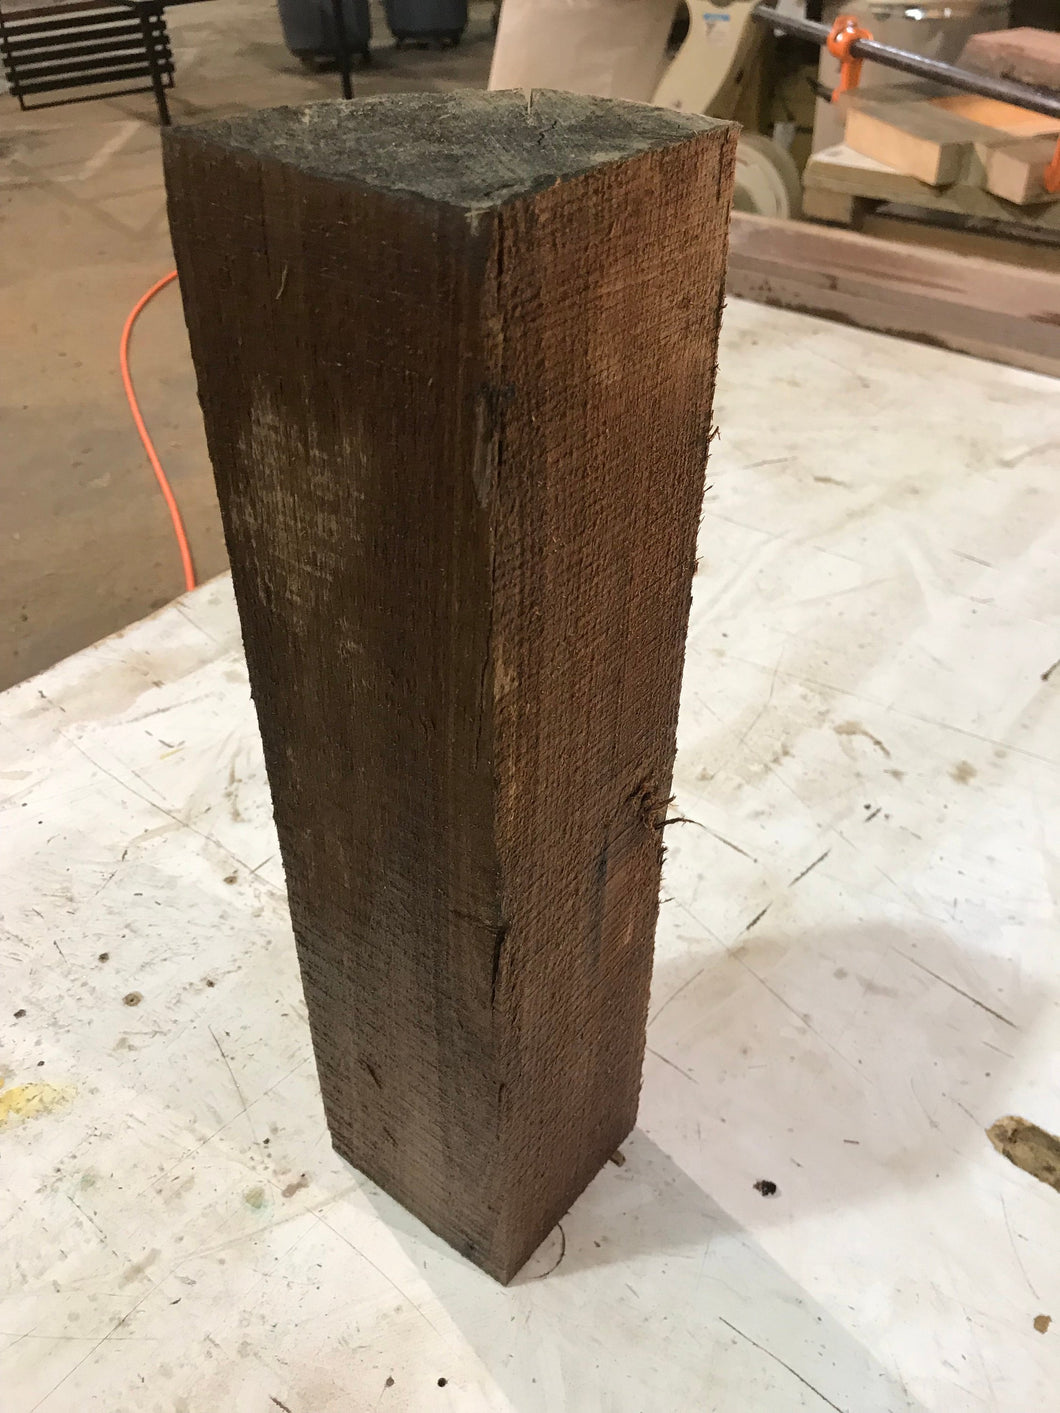 Walnut 4x4 for wood turning on Lathe